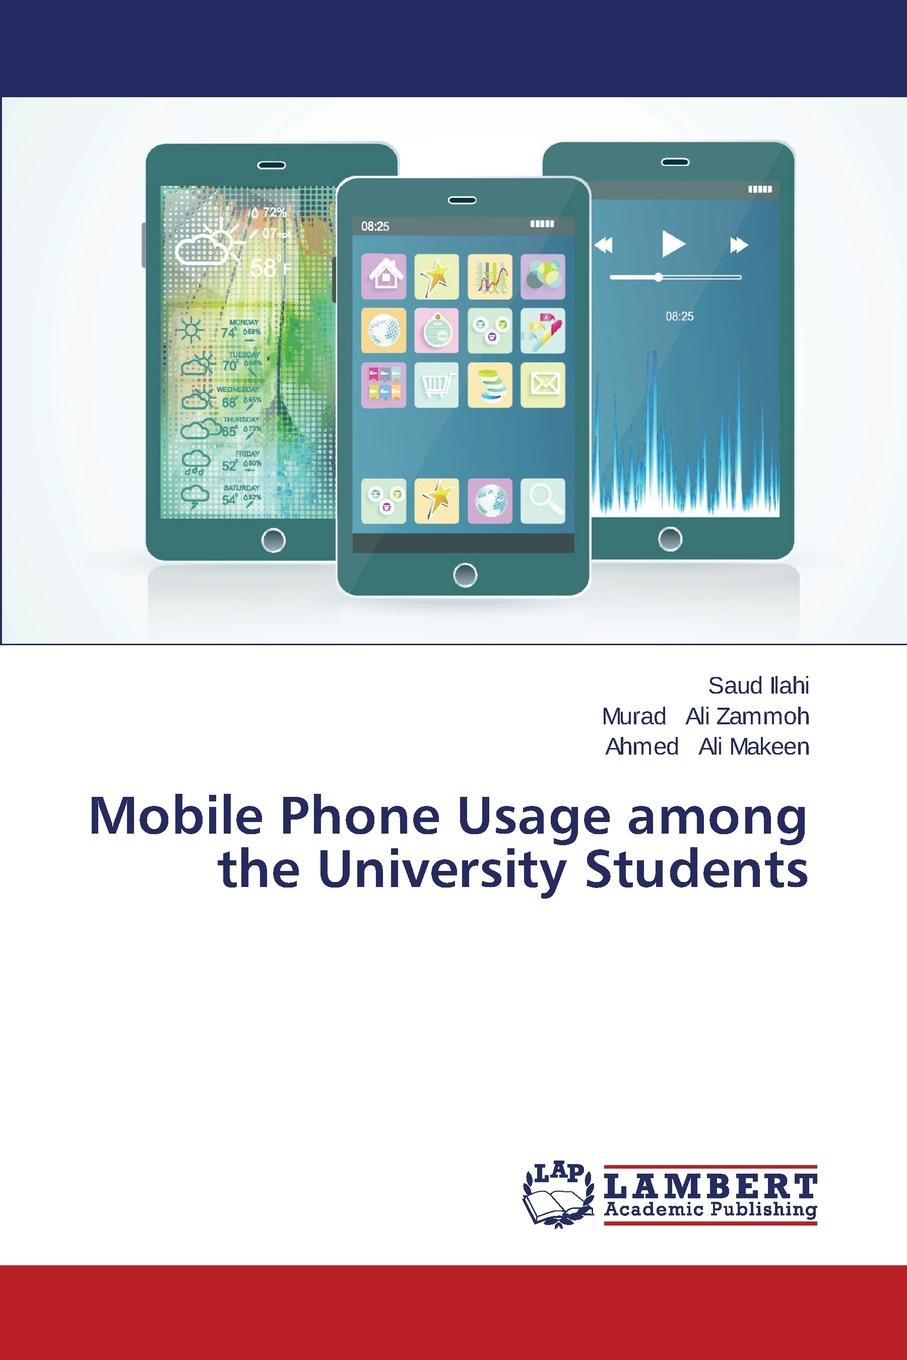 Ilahi Saud, Ali Zammoh Murad, Ali Makeen Ahmed Mobile Phone Usage among the University Students ishfaq ahmed and tehmina fiaz qazi mobile phone adoption a habit or necessity